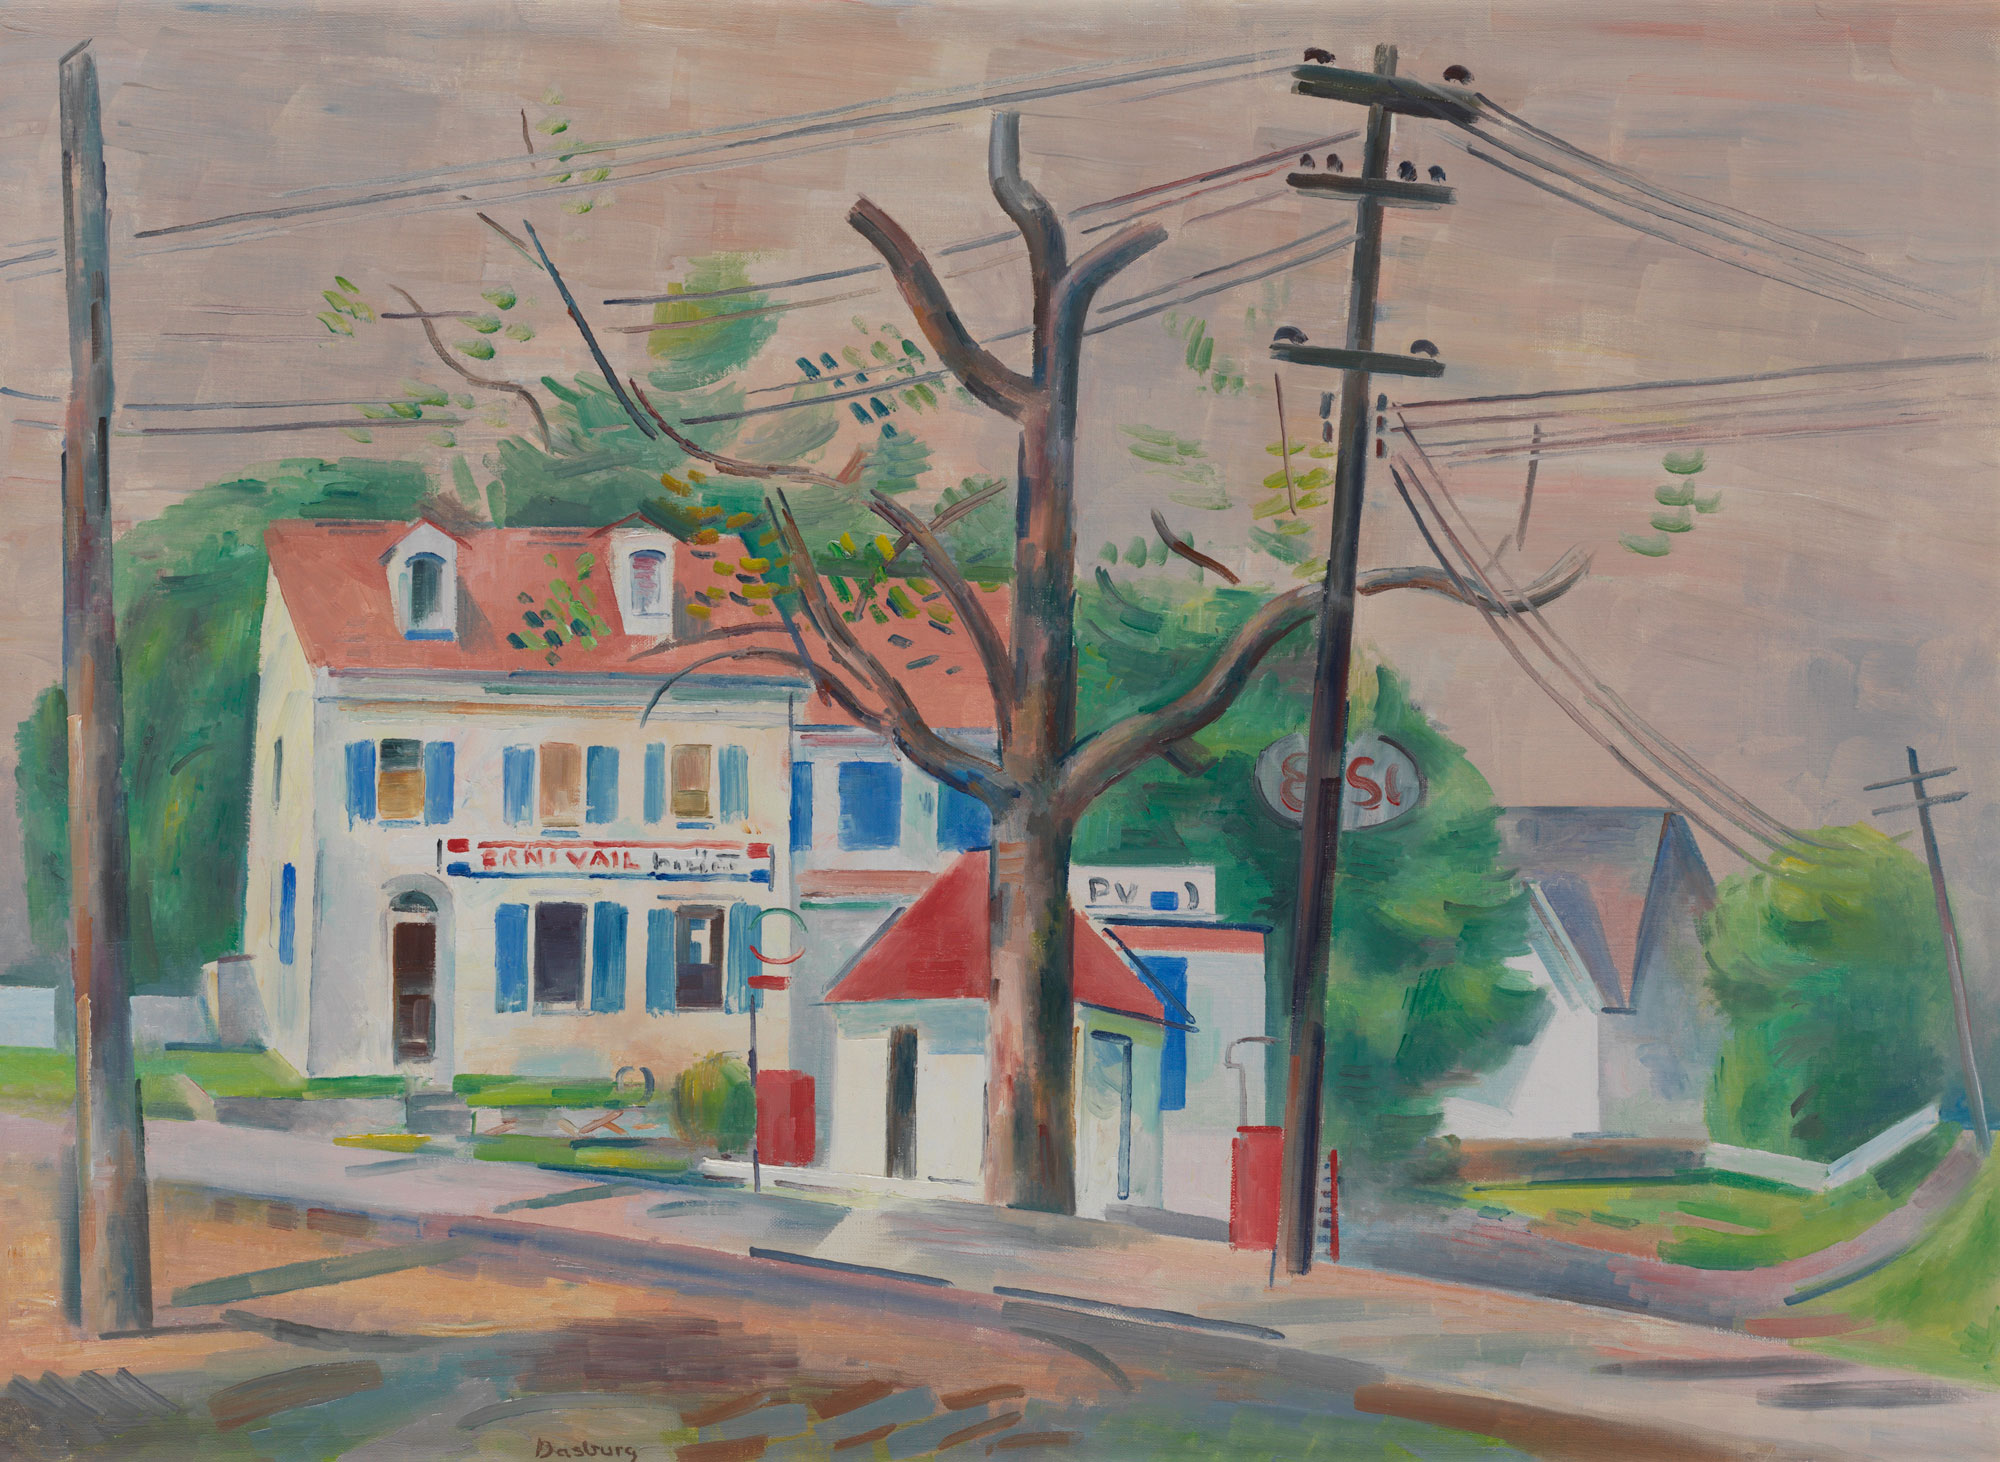 Oil painting of houses, trees, and power lines